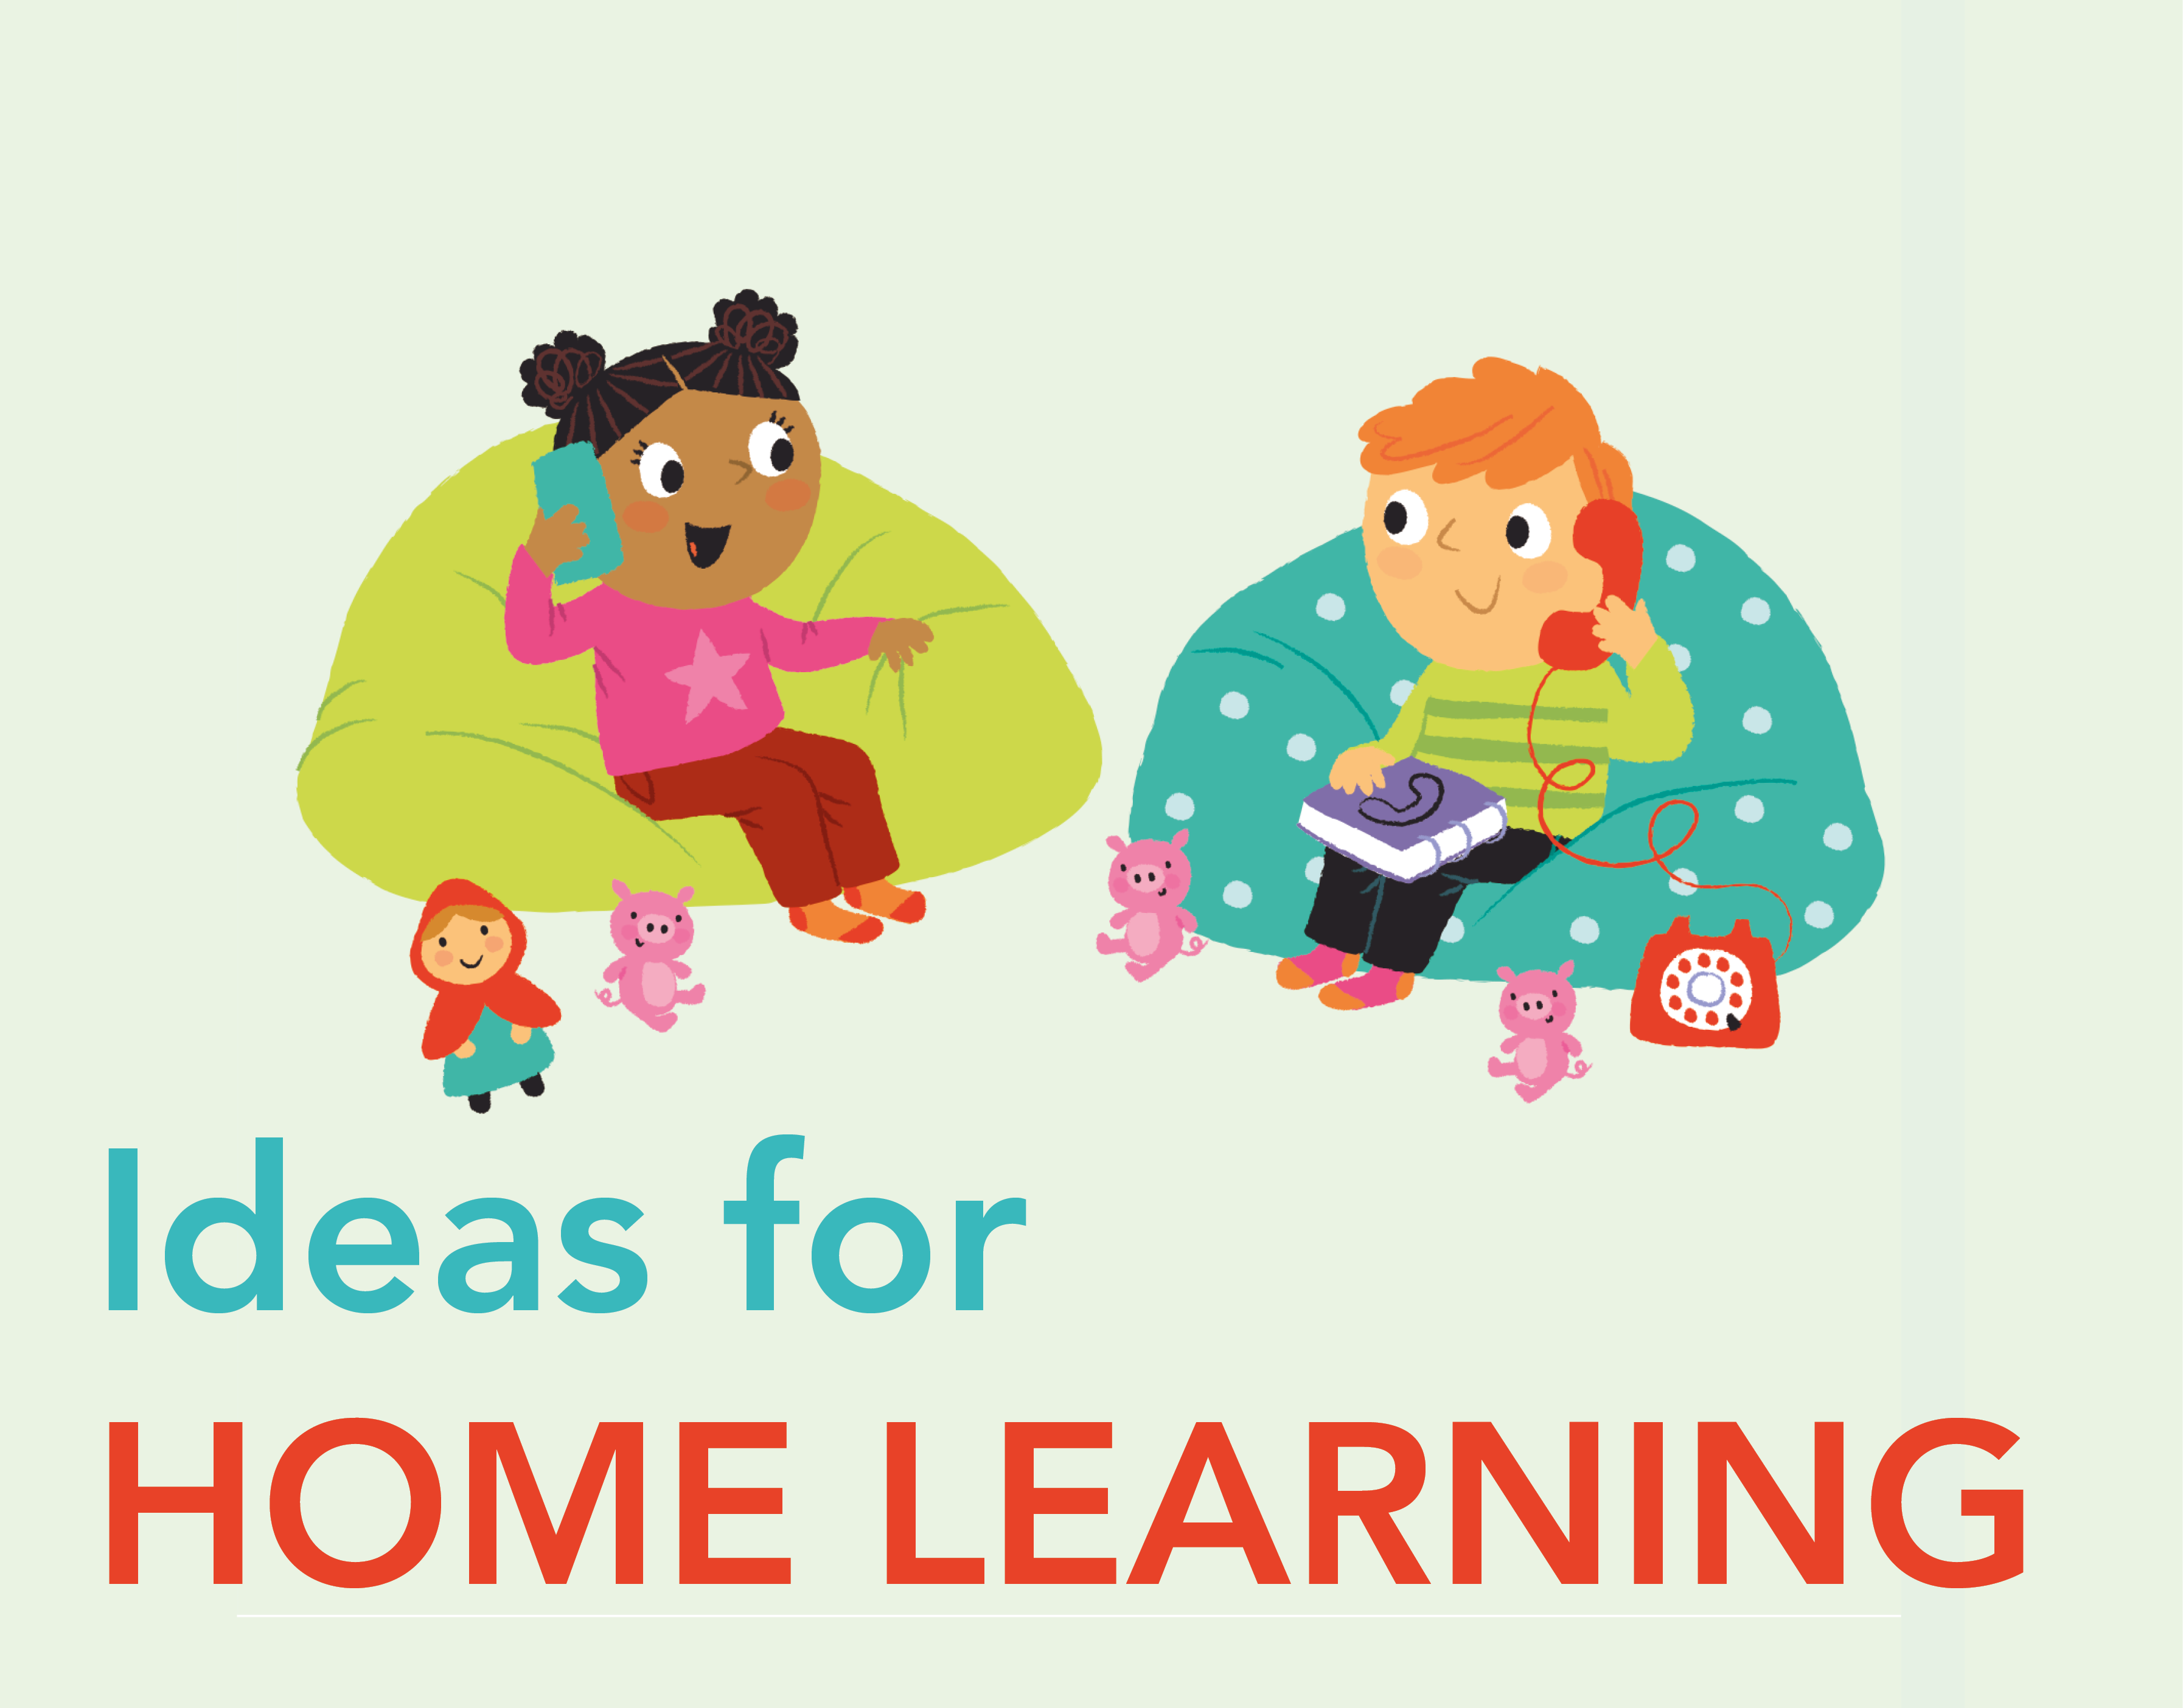 Ideas for Home Learning